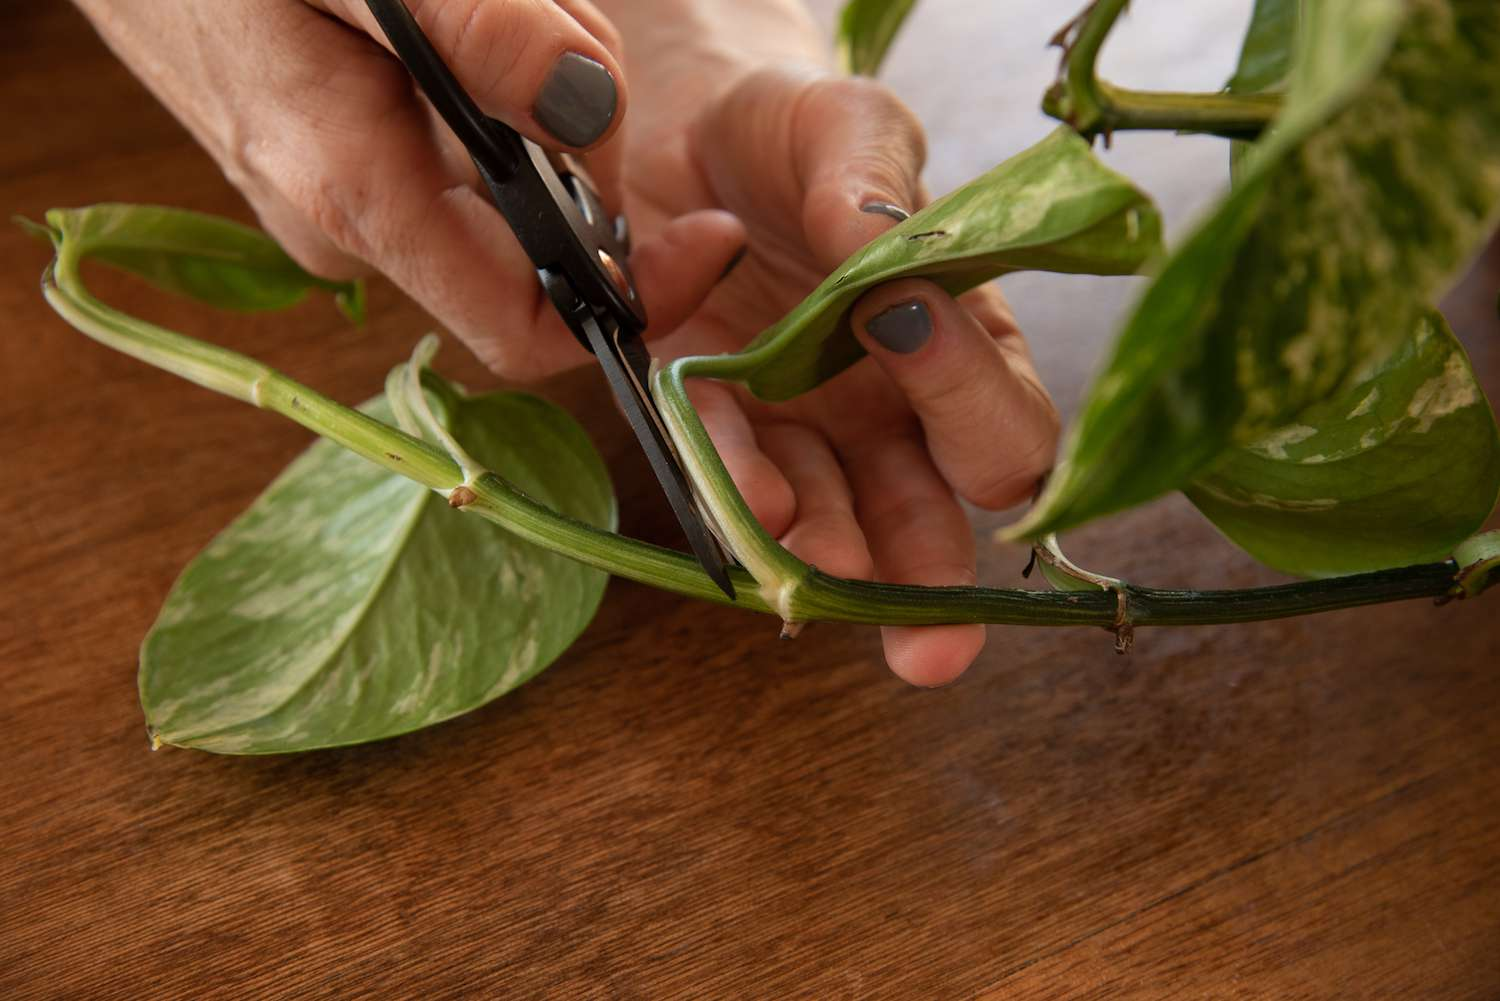 Pothos Plant: Care and Growing Guide